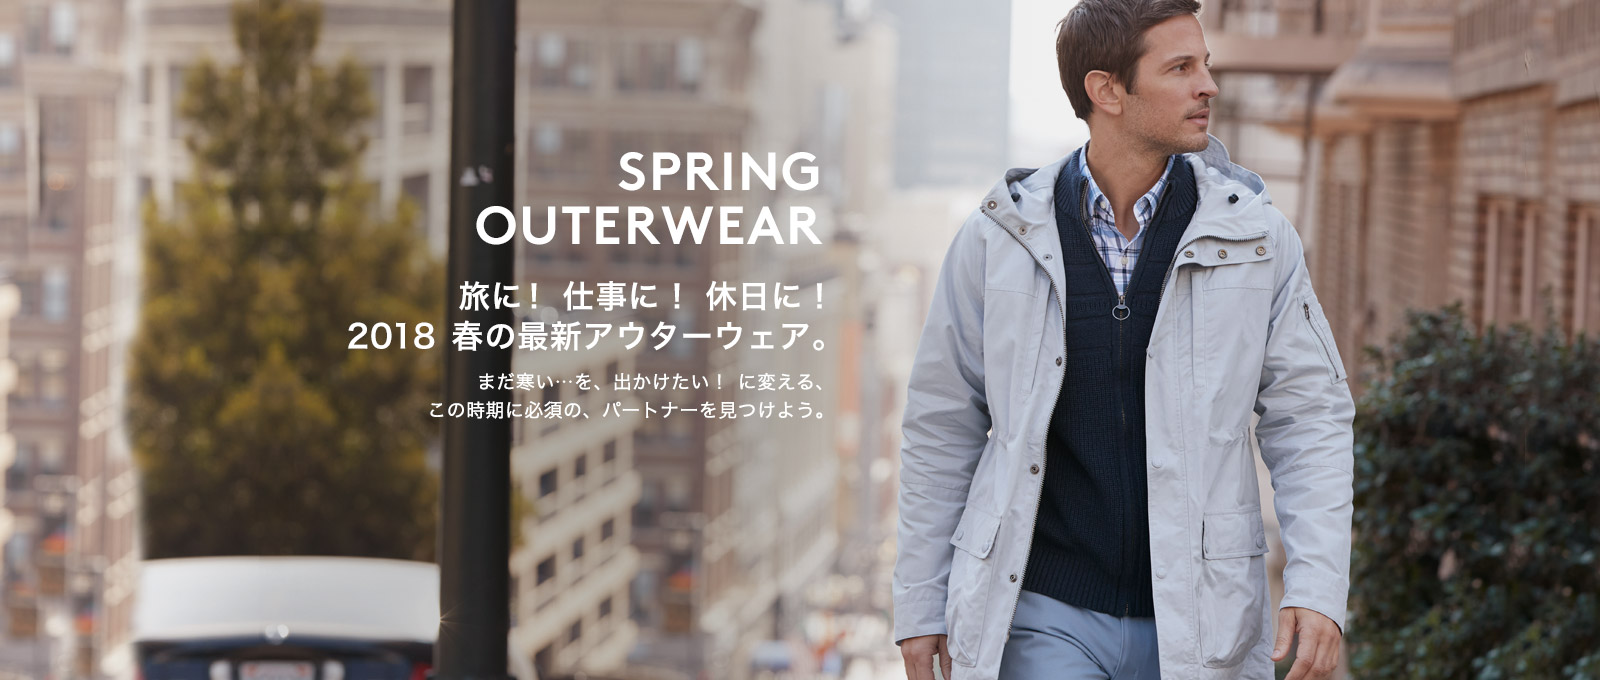 【SPRING OUTERWEAR】旅に!仕事に!休日に!2018 春のアウターウェア。